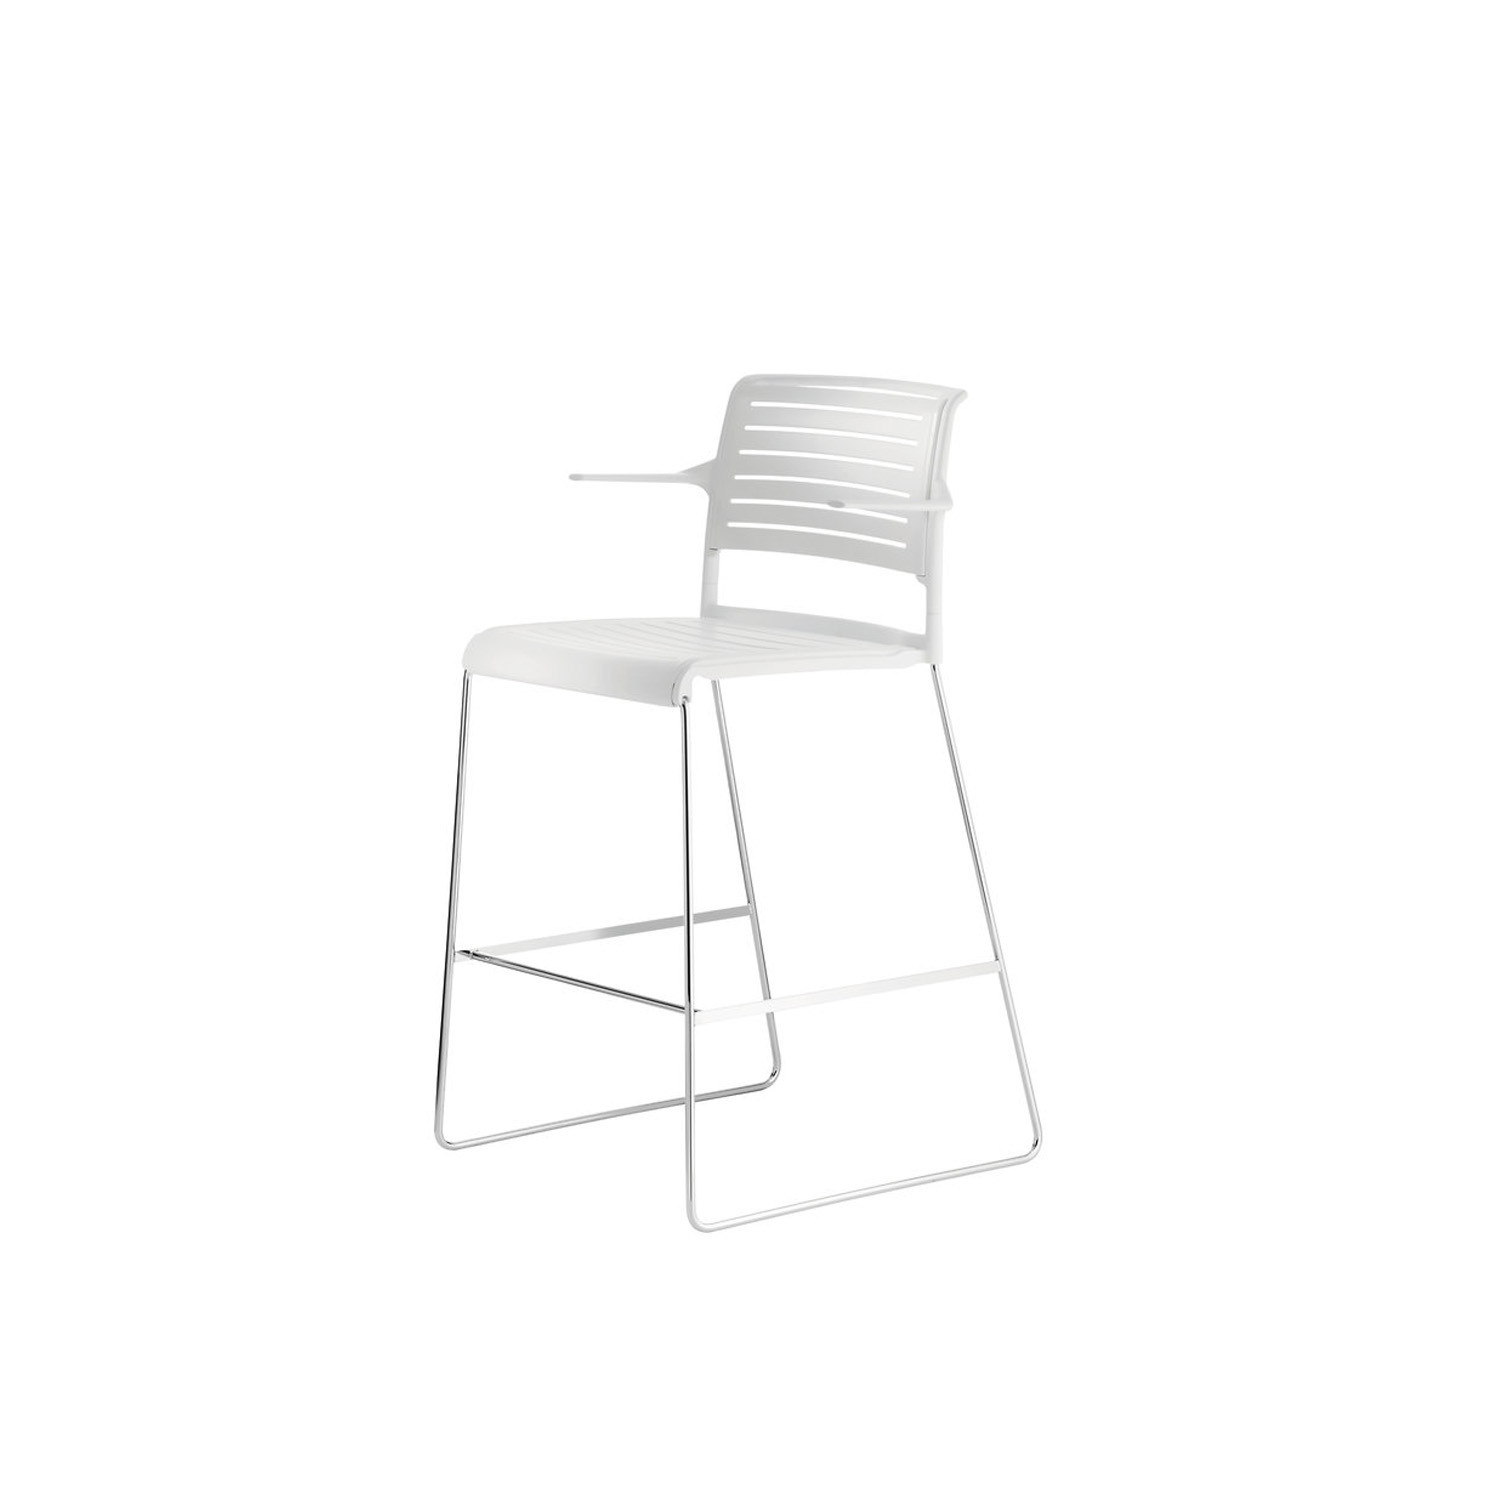 Aline-S High Chair